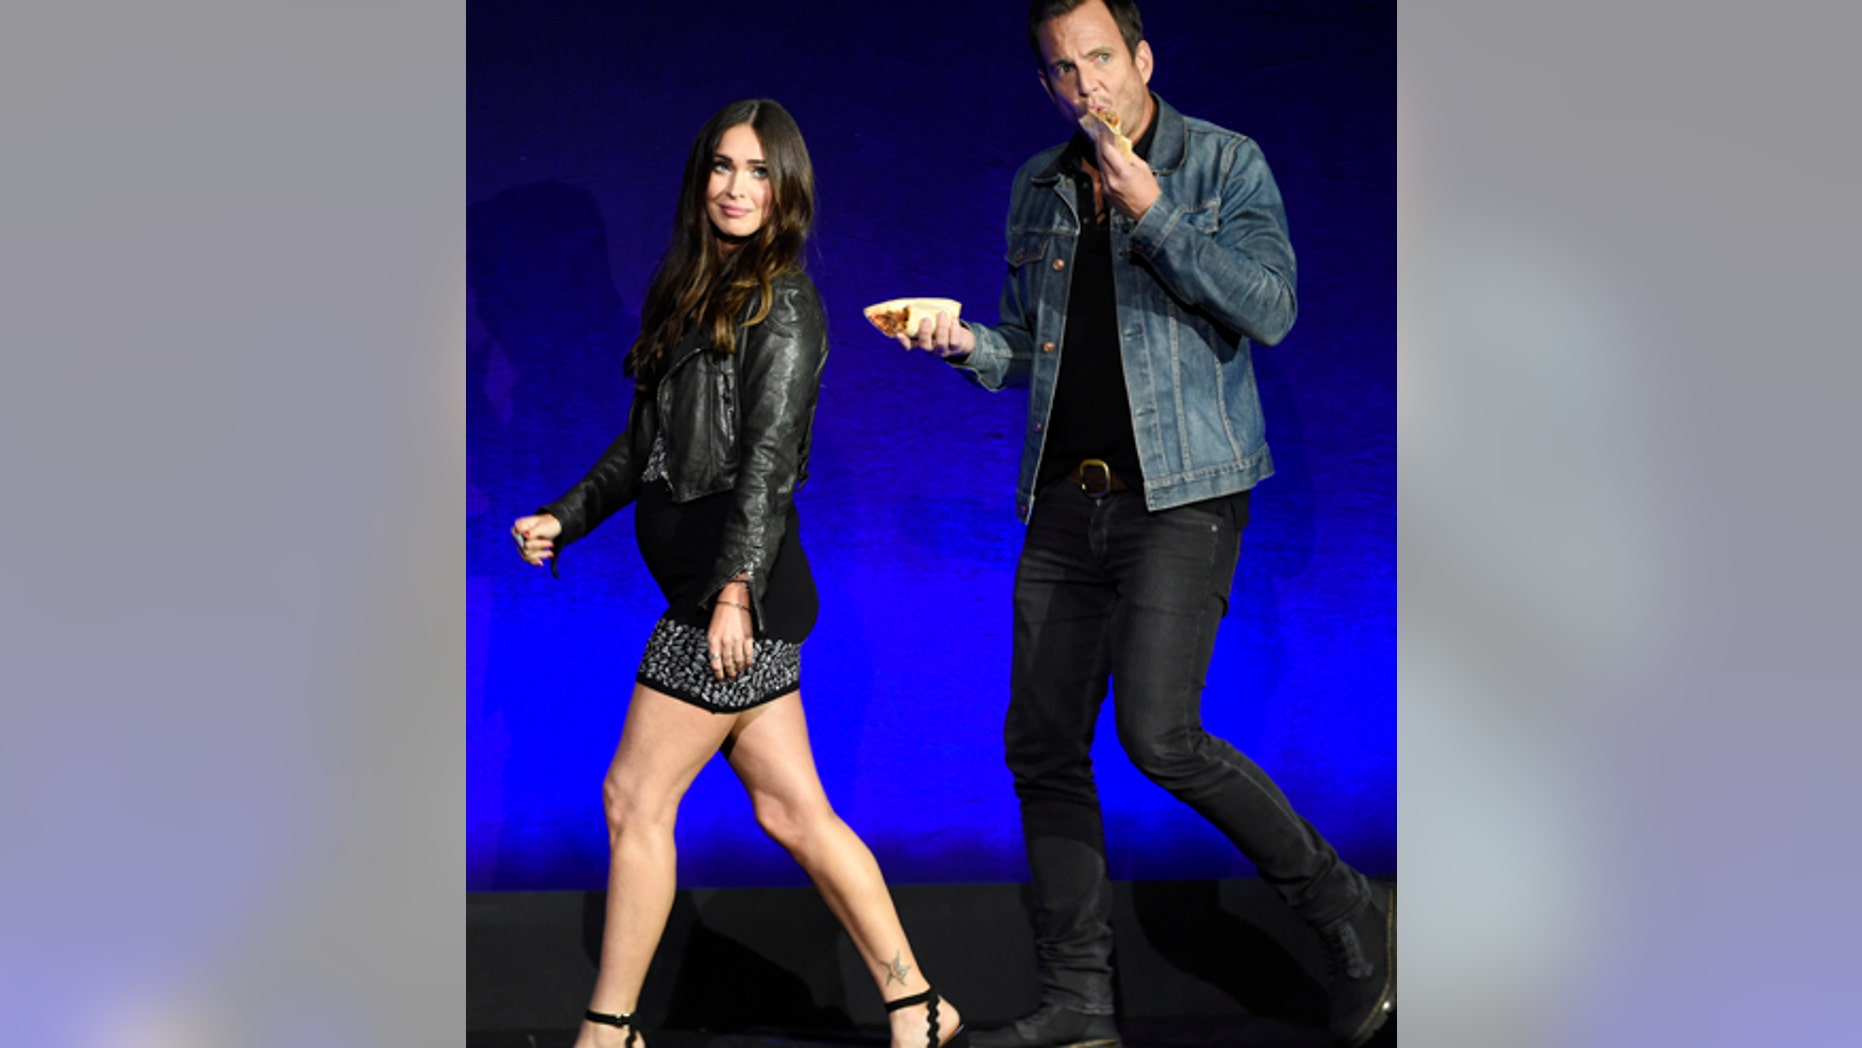 """Megan Fox, left, and Will Arnett, cast members in the upcoming film """"Teenage Mutant Ninja Turtles: Out of the Shadows,"""" take the stage during the Paramount Pictures presentation at CinemaCon 2016, the official convention of the National Association of Theatre Owners (NATO), at Caesars Palace on Monday, April 11, 2016, in Las Vegas, NV."""